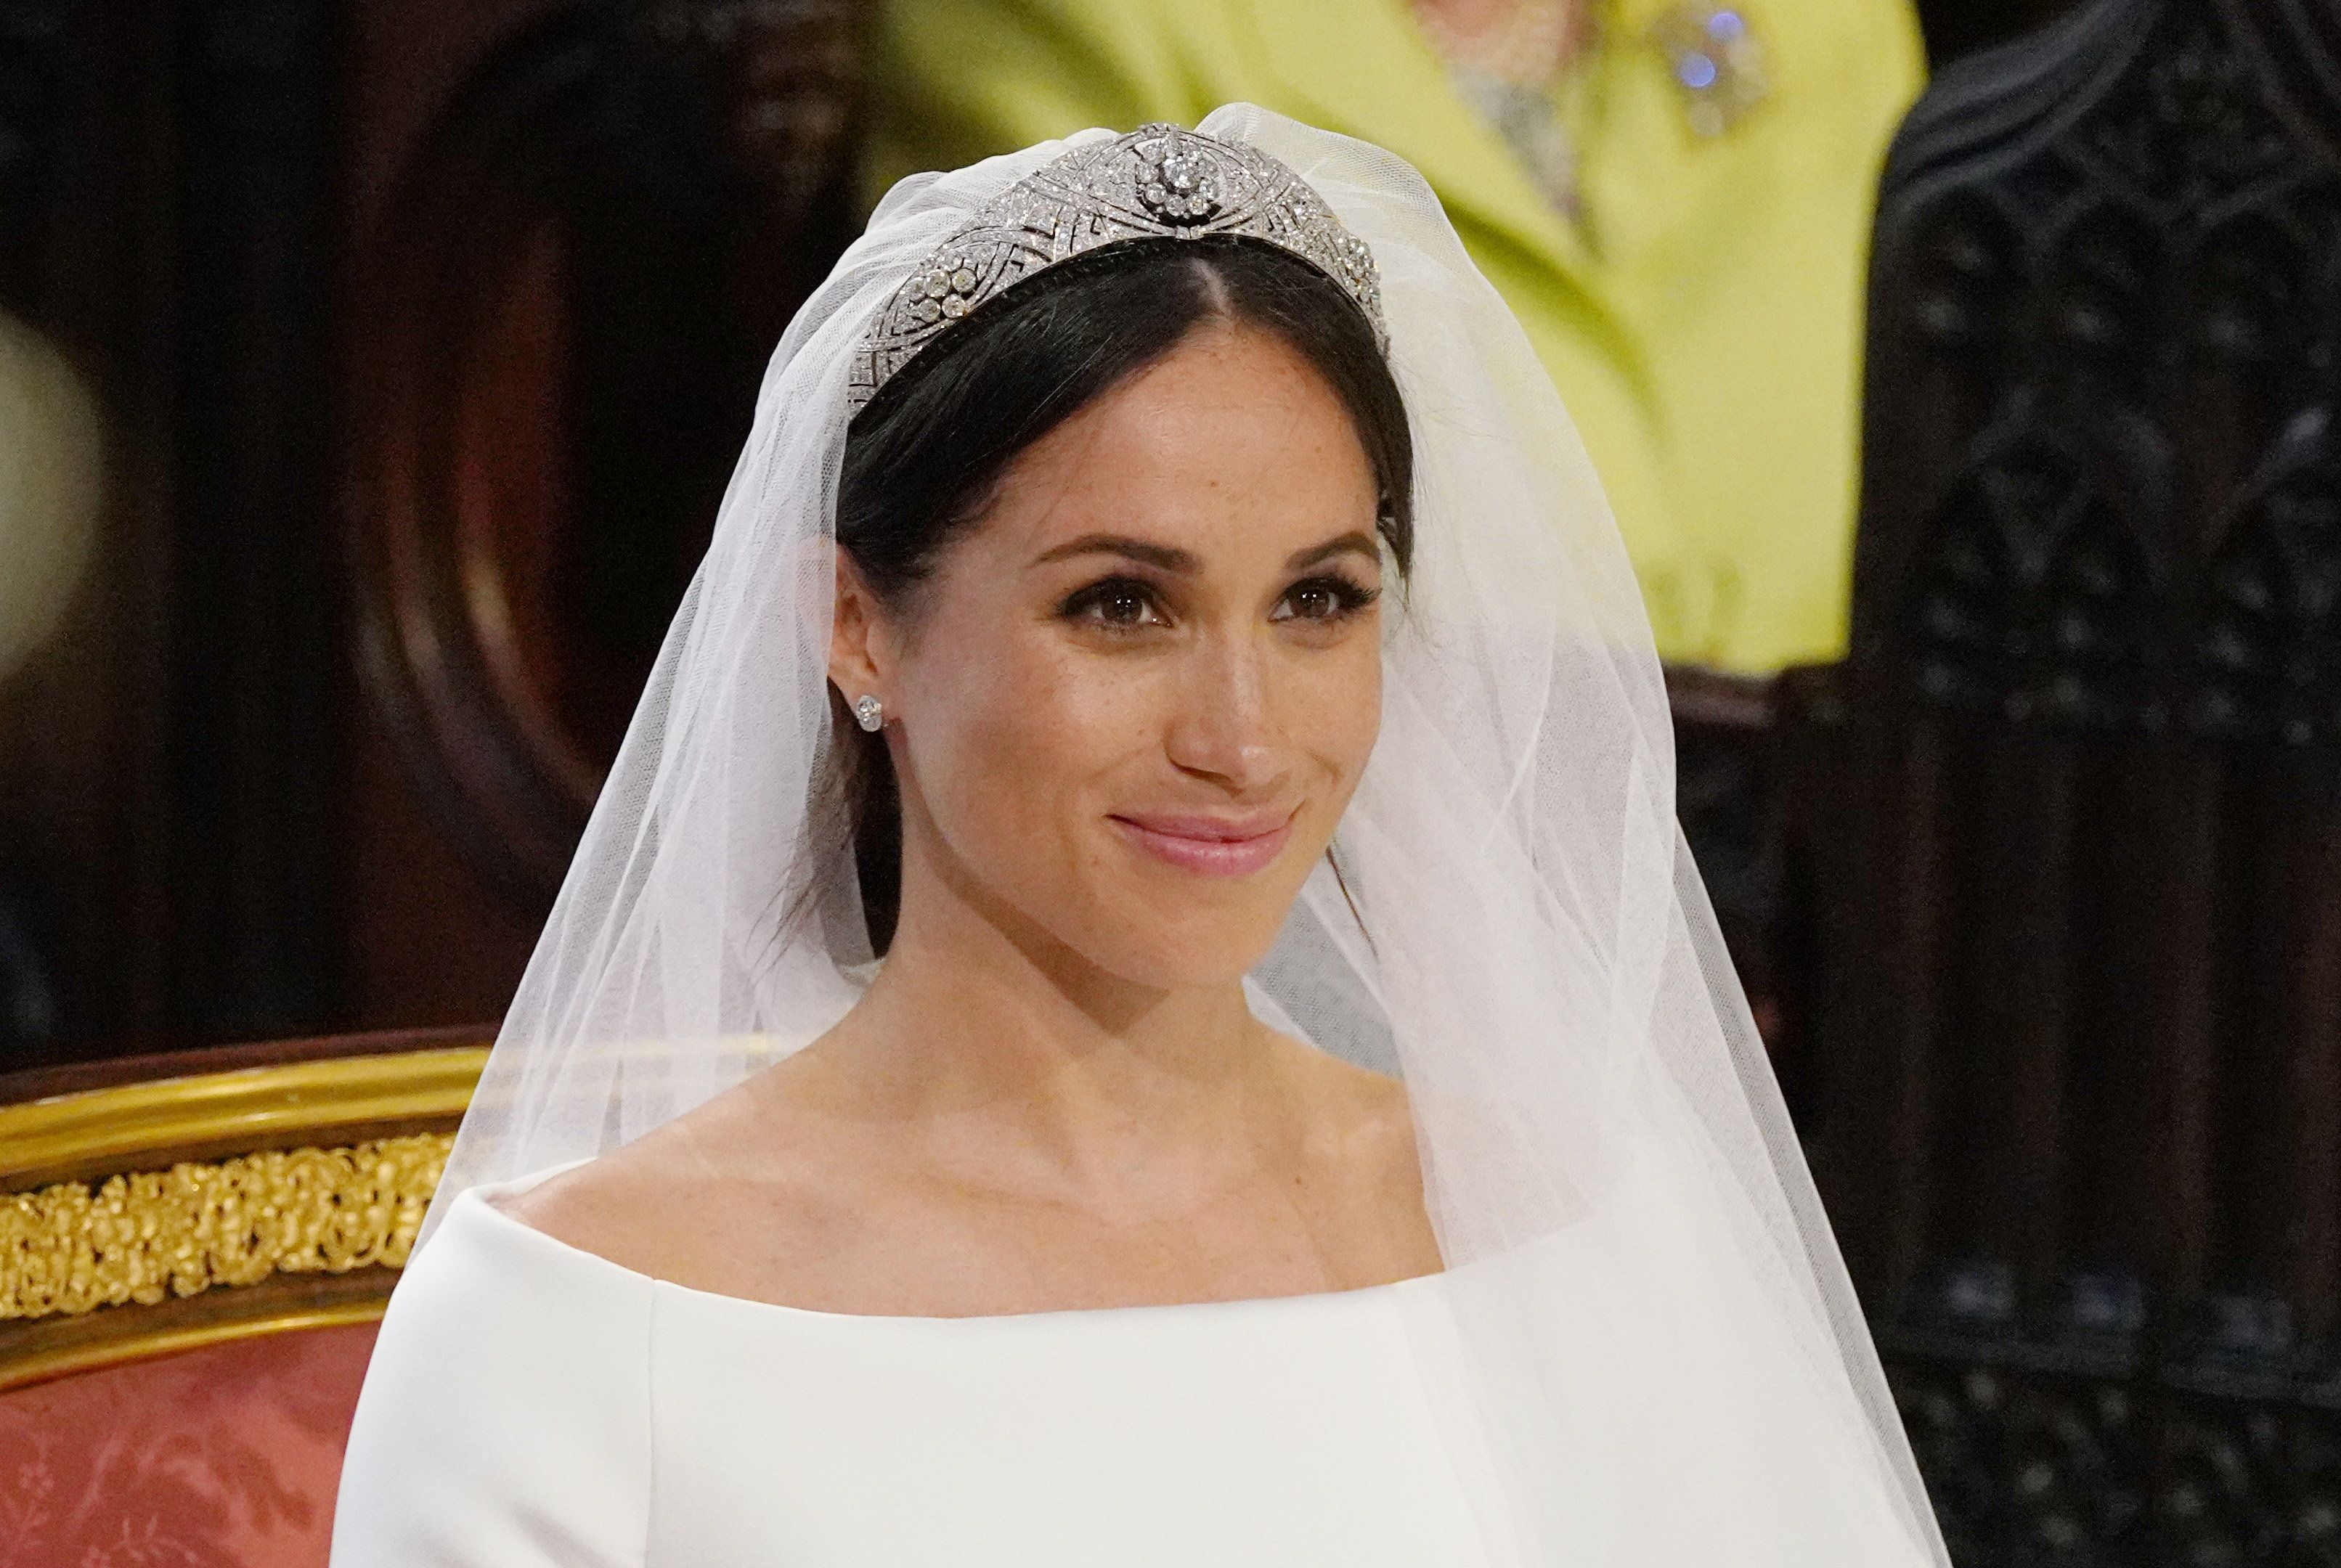 TOPSHOT - US fiancee of Britain's Prince Harry, Meghan Markle arrives at the High Altar for their wedding ceremony in St George's Chapel, Windsor Castle, in Windsor, on May 19, 2018. (Photo by Jonathan Brady / POOL / AFP)        (Photo credit should read JONATHAN BRADY/AFP/Getty Images)